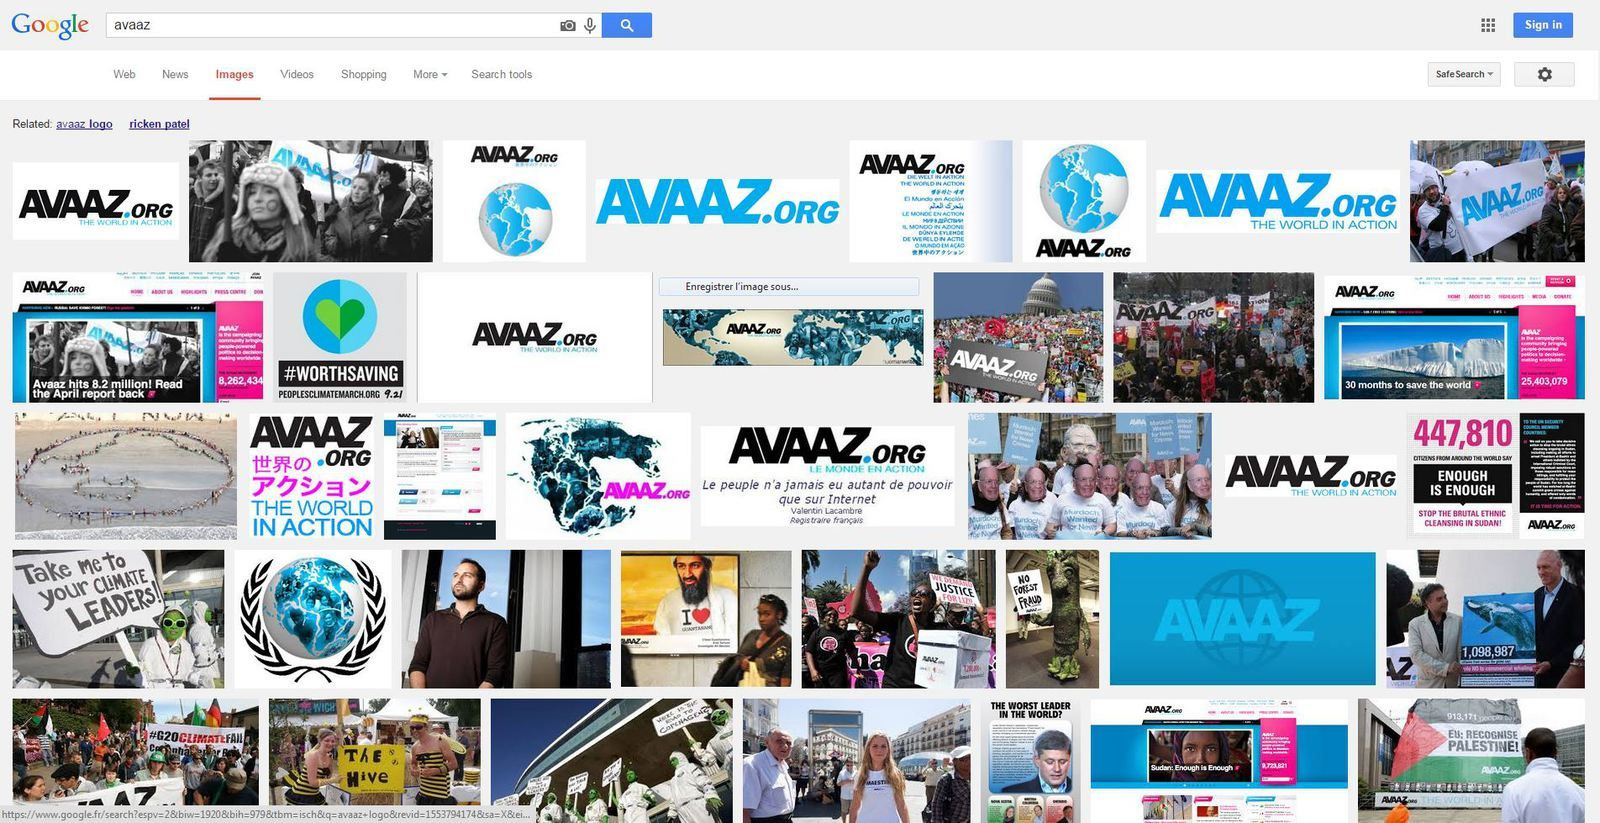 Avaaz is the campaigning community bringing people-powered politics to decision making worldwide.